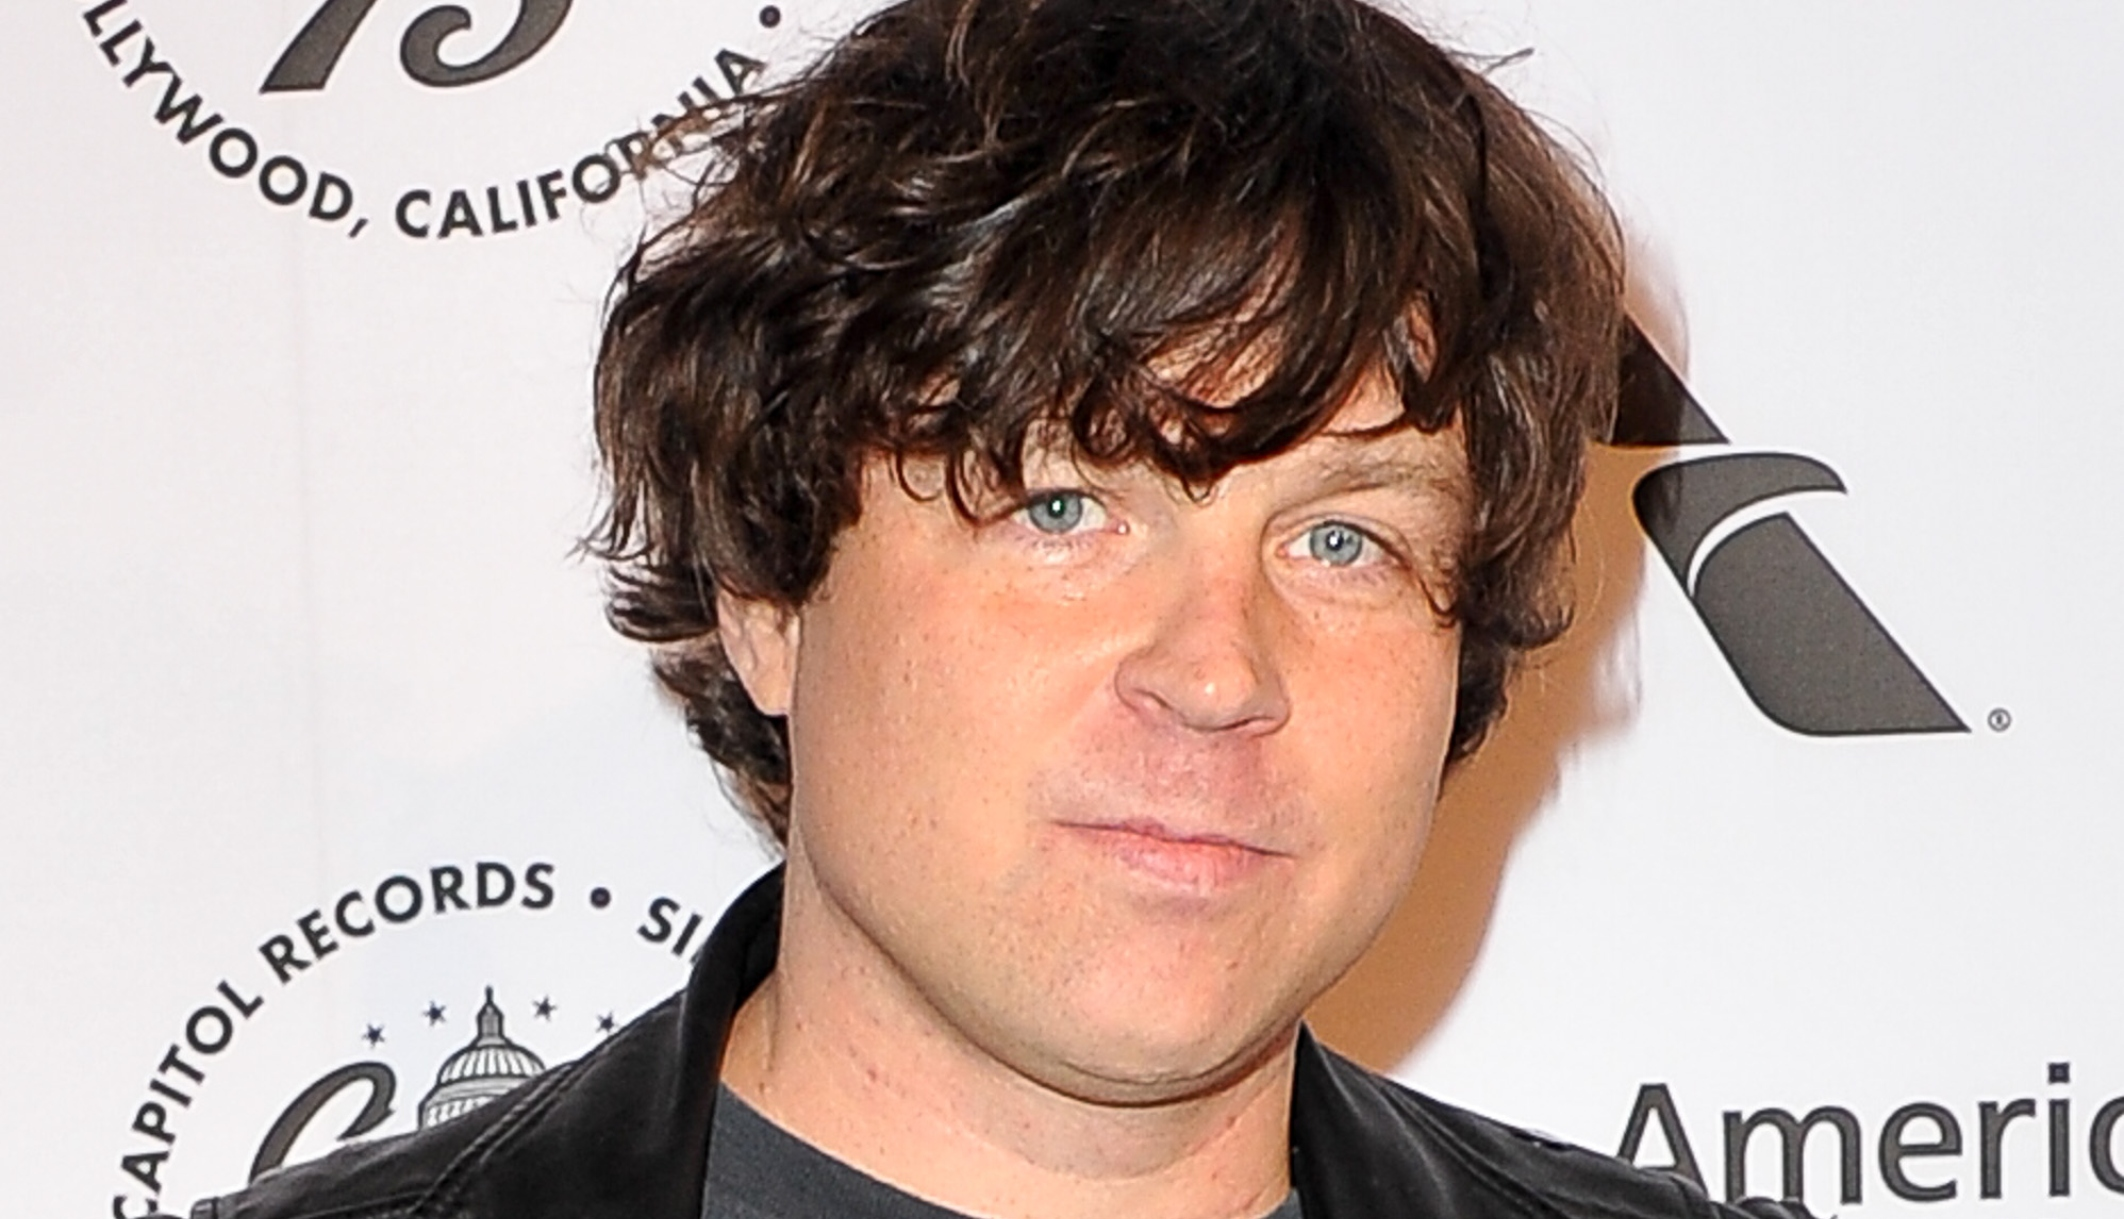 Singer-songwriter Ryan Adams attends the Capitol Records' 75th Anniversary Gala in 2016